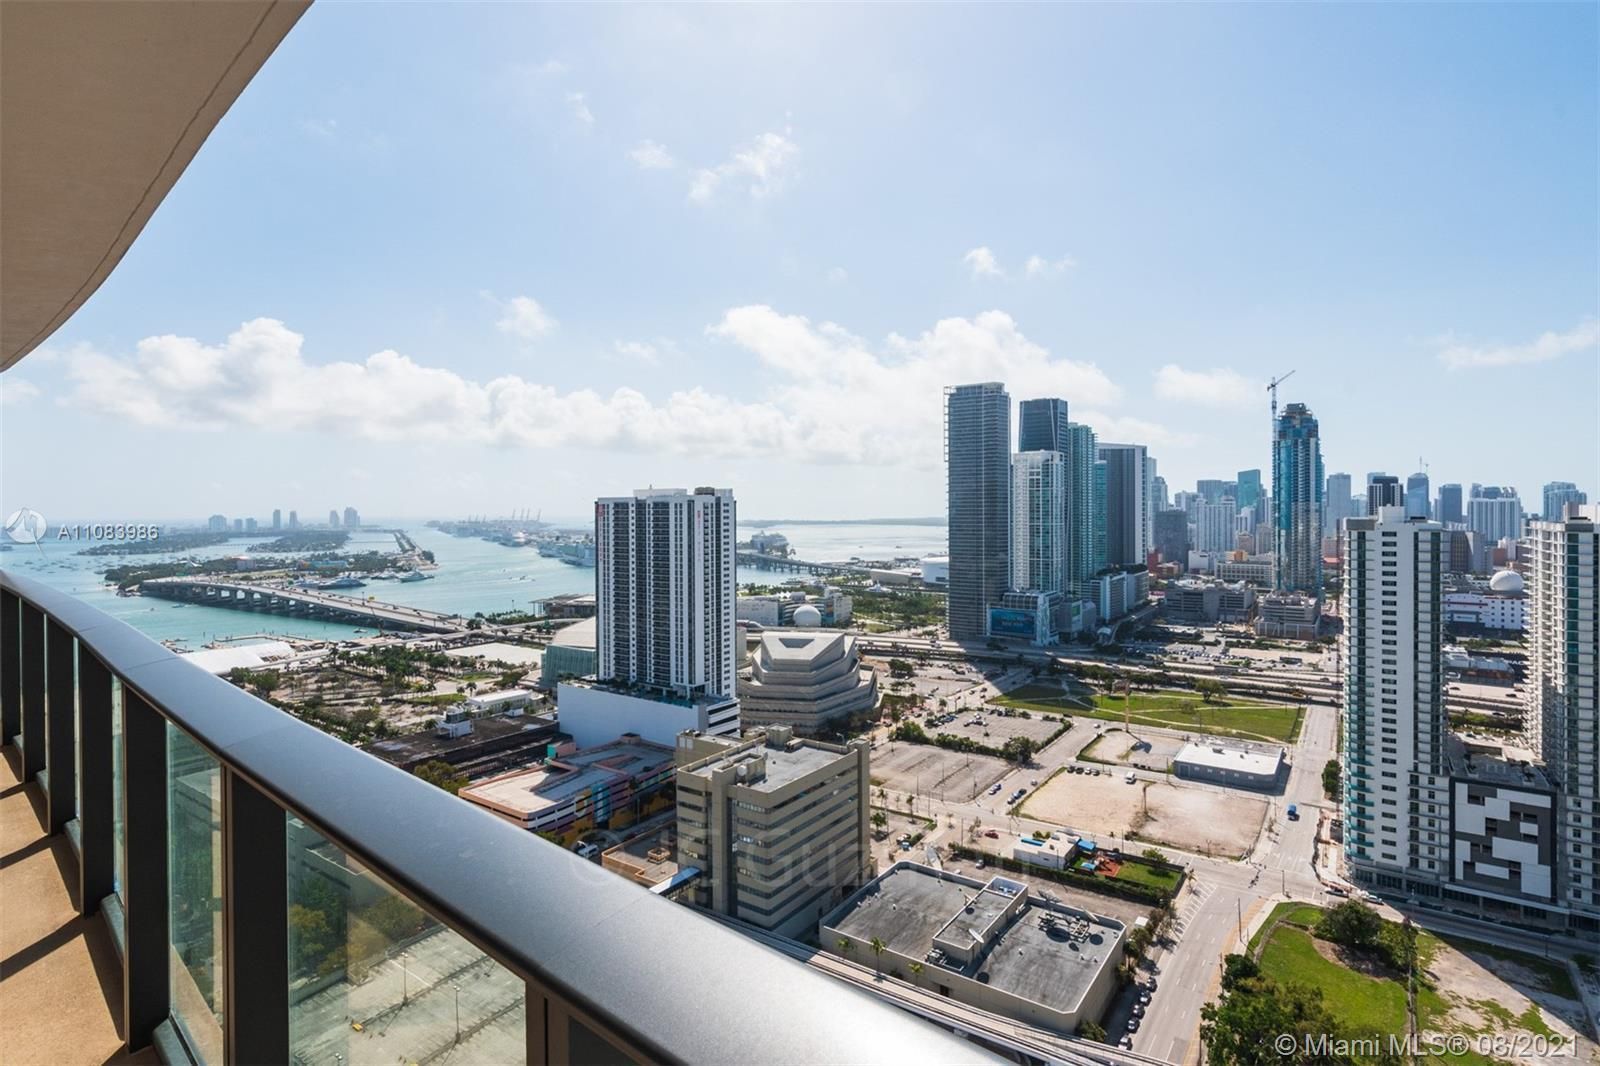 Come and admire this beautiful view of Miami and the bay from the 36th floor. Canvas was designed to